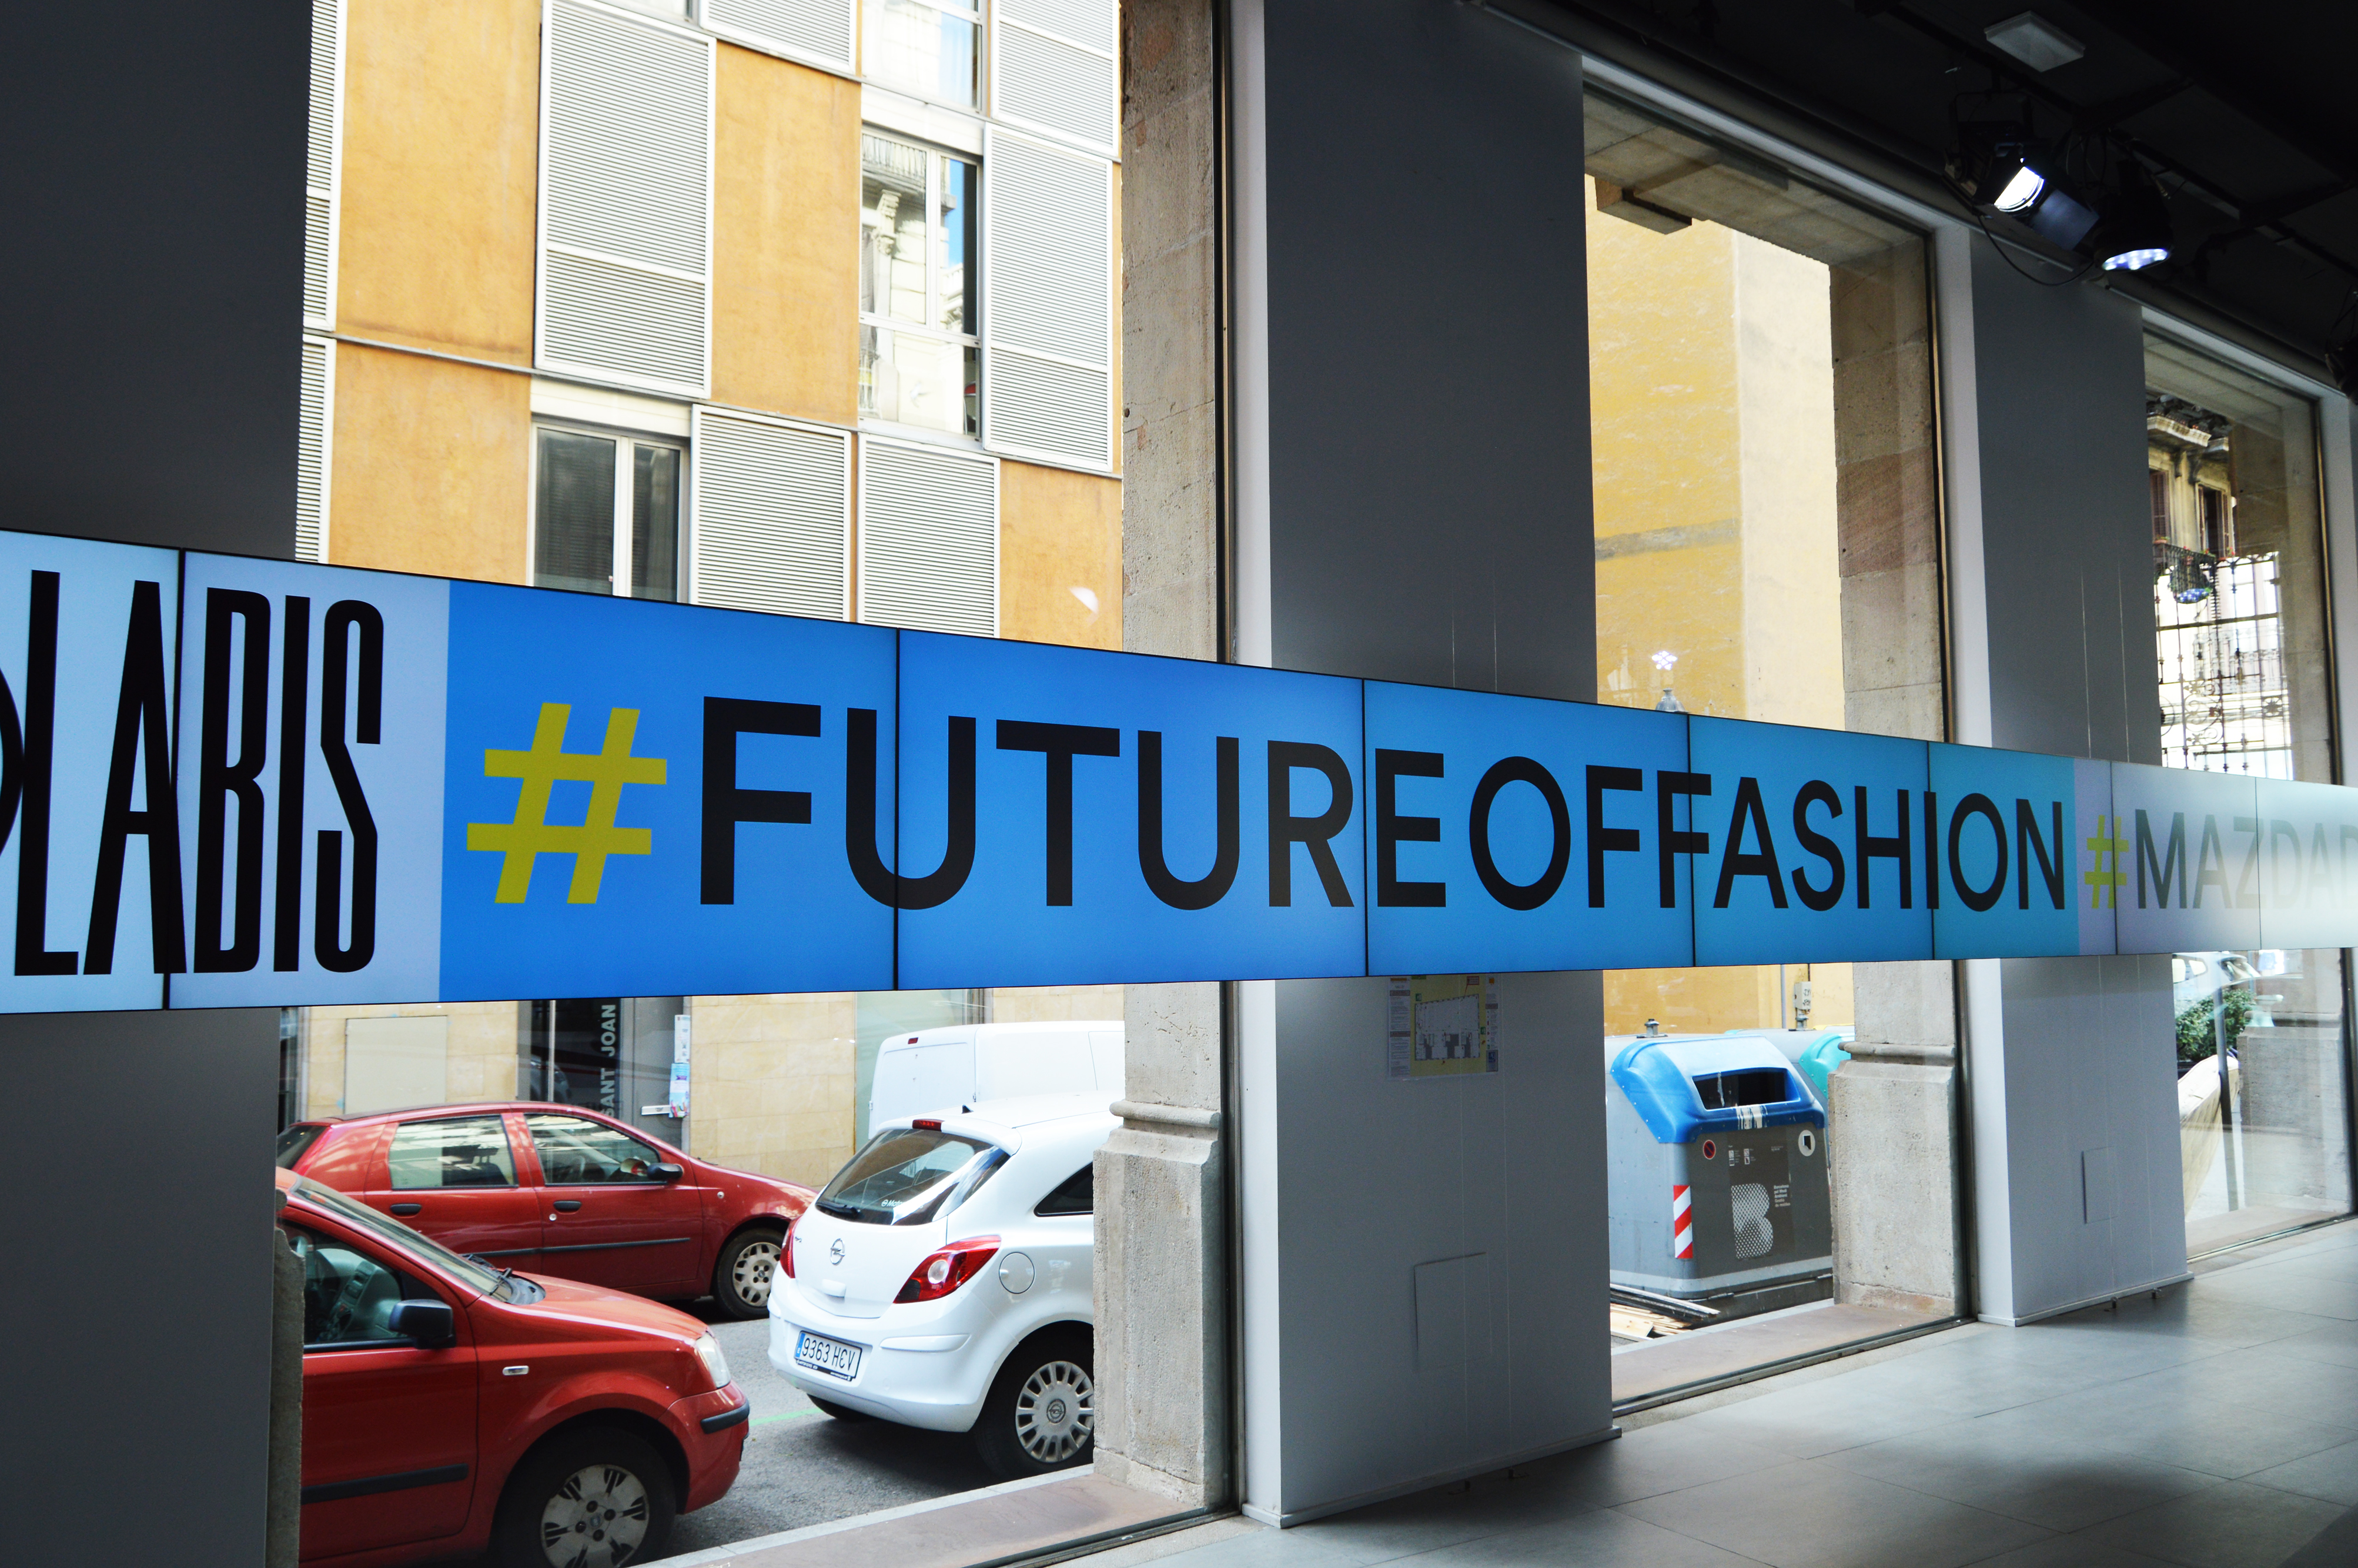 THE FUTURE OF FASHION, EMERGING DESIGN